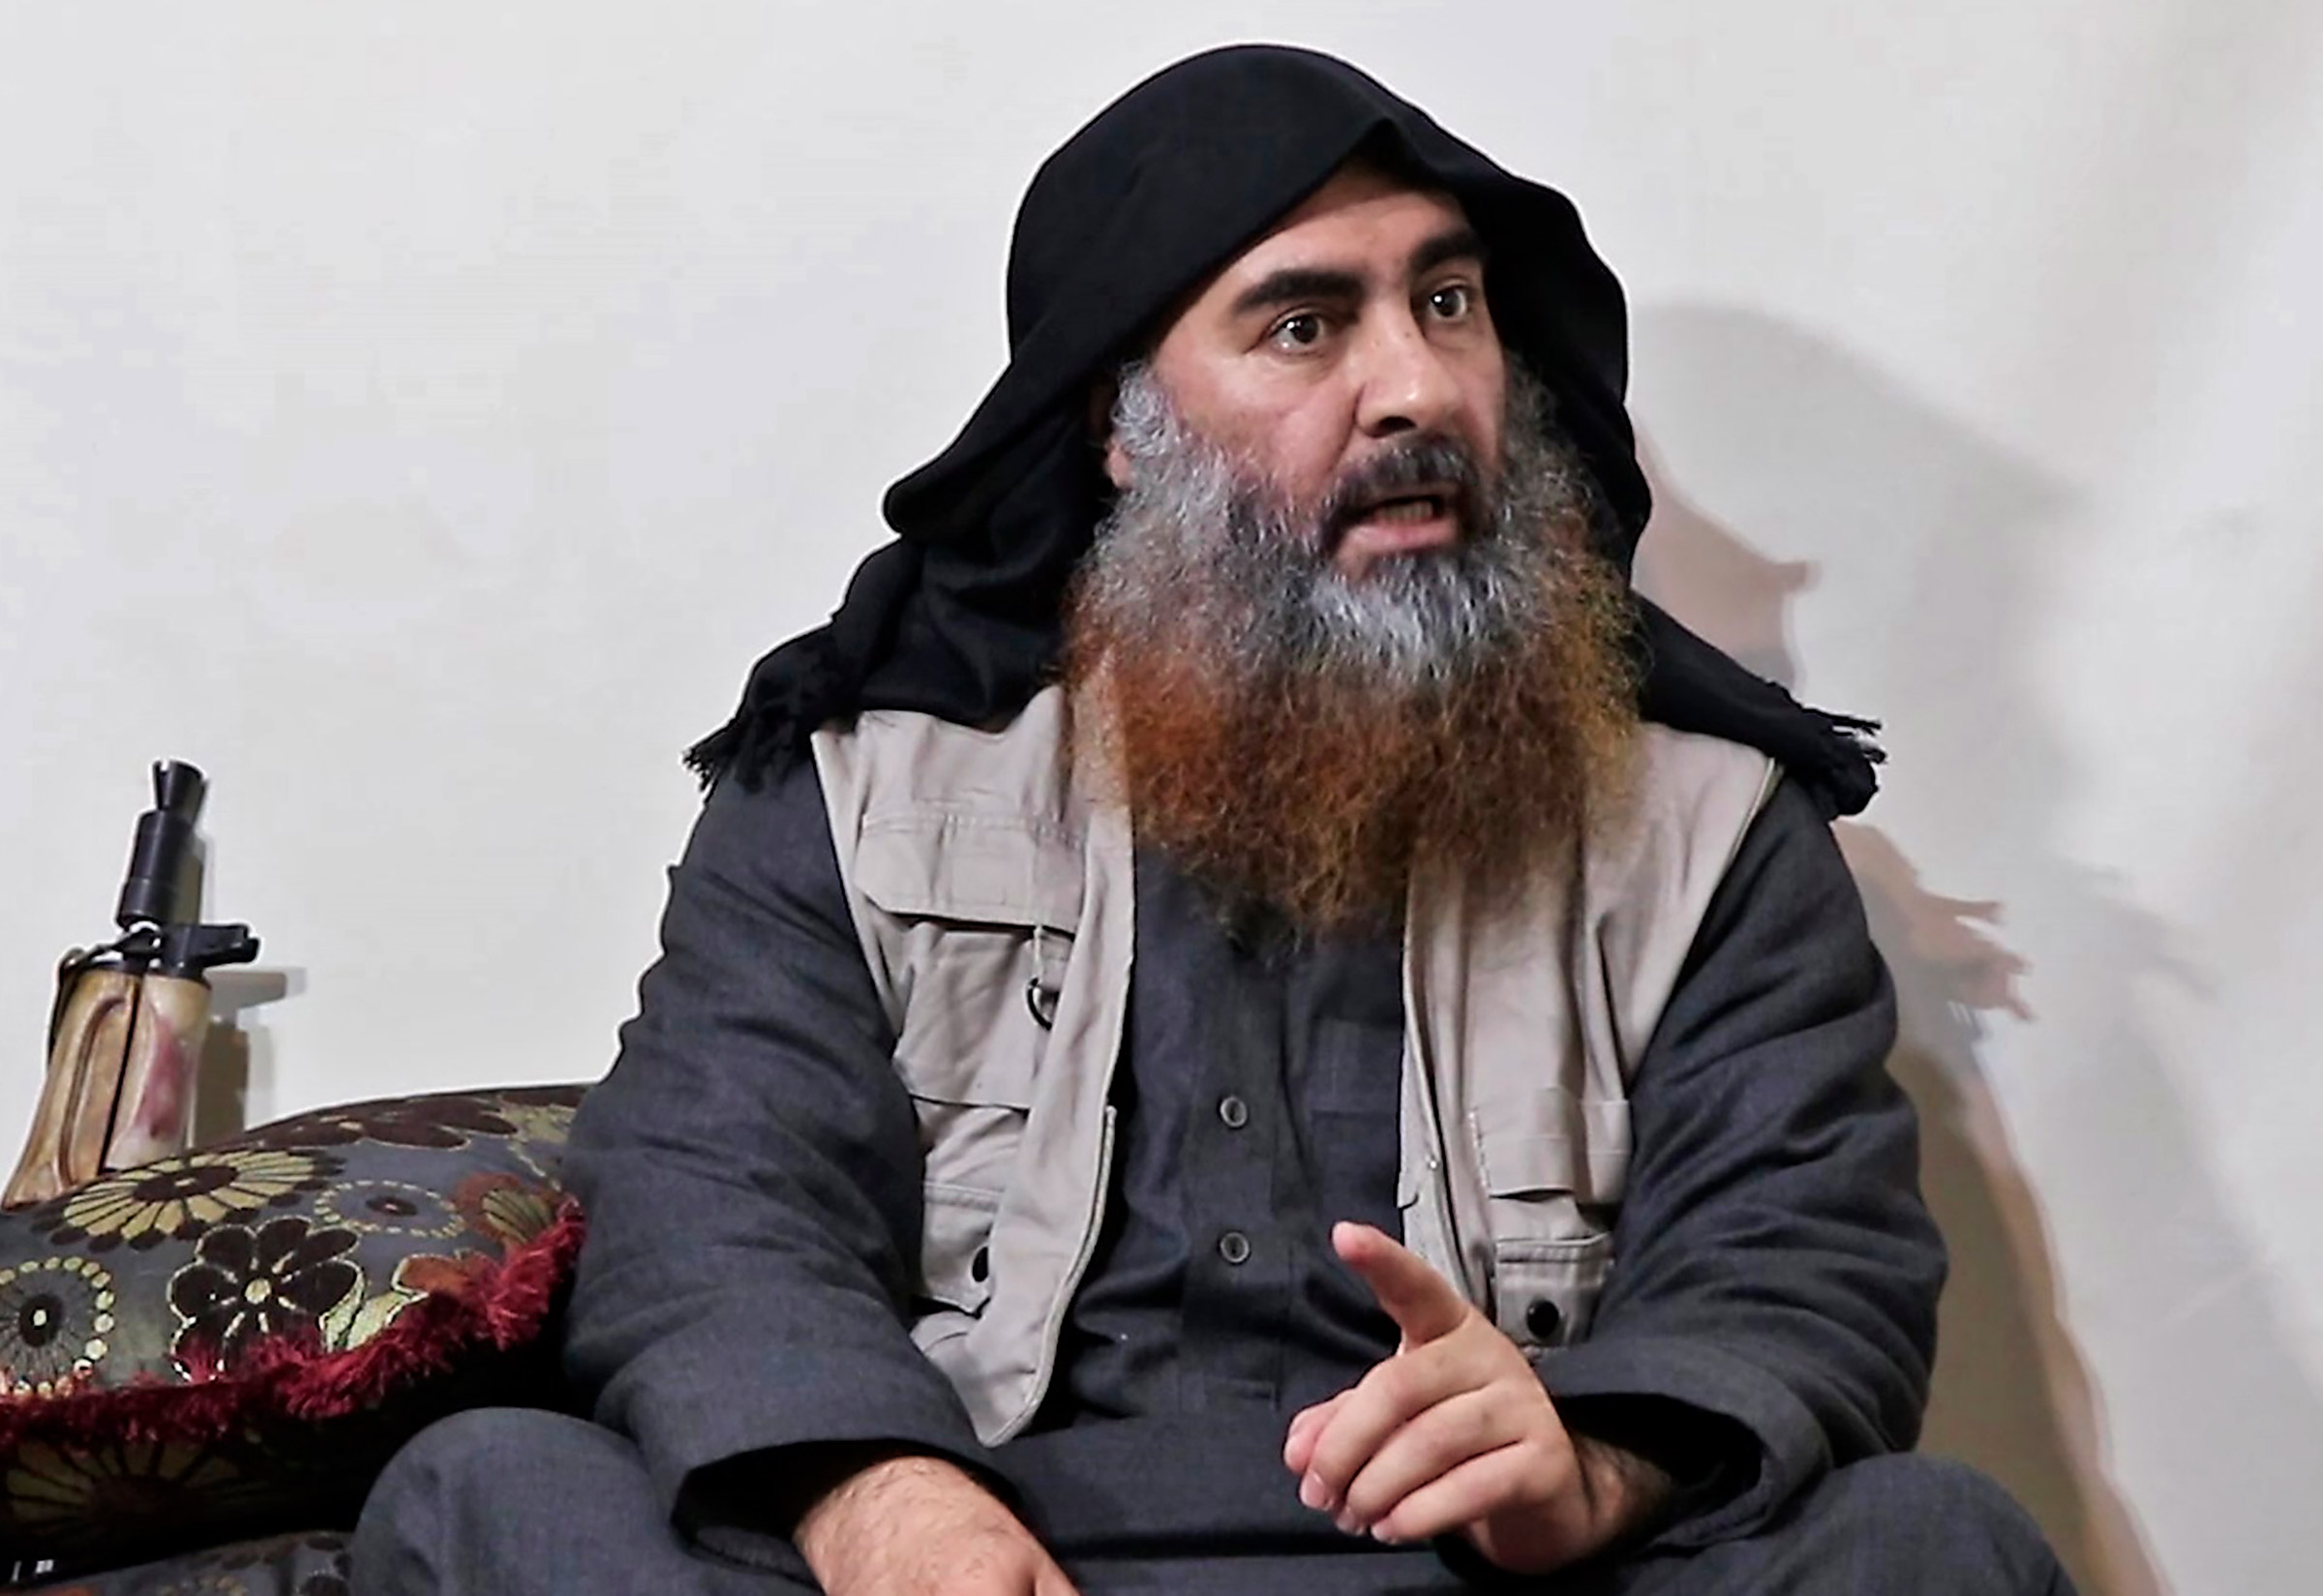 An ISIS video released in April gave the world its first glimpse of al-Baghdadi in five years